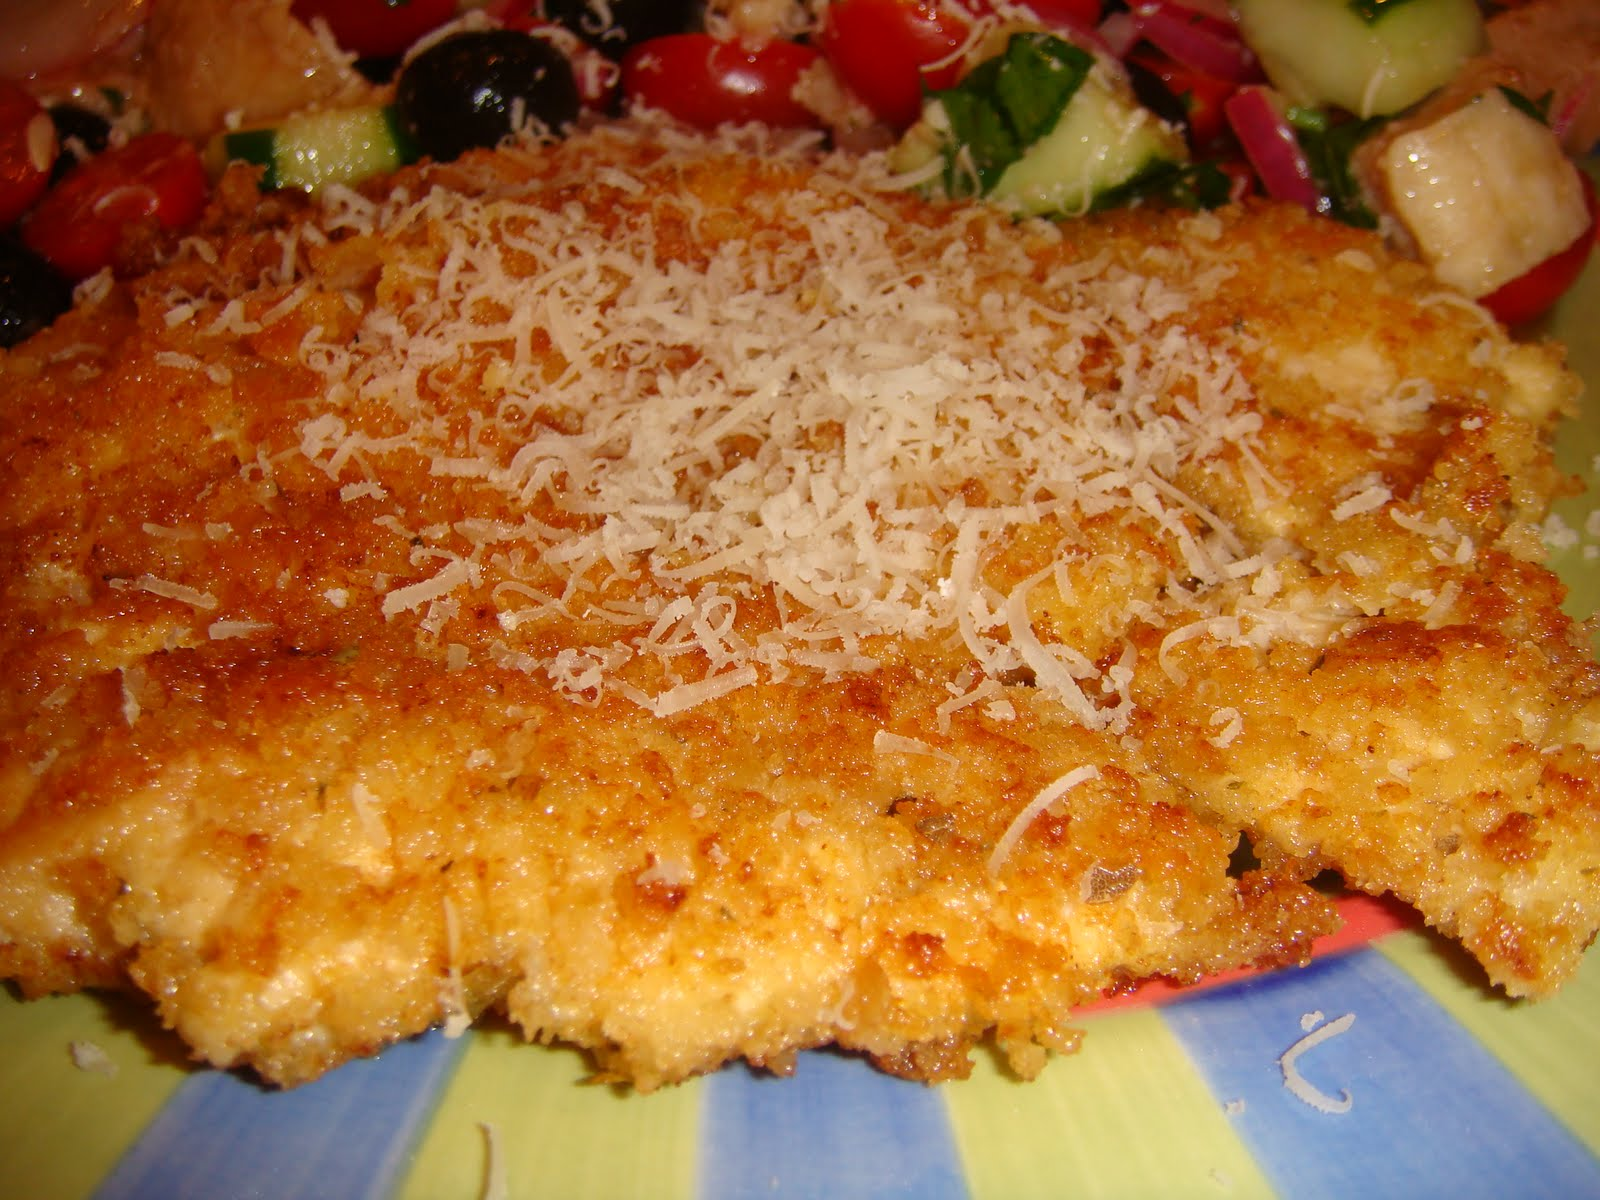 Parmesan Crusted Chicken our blissfully delicious life: panko & parmesan crusted chicken